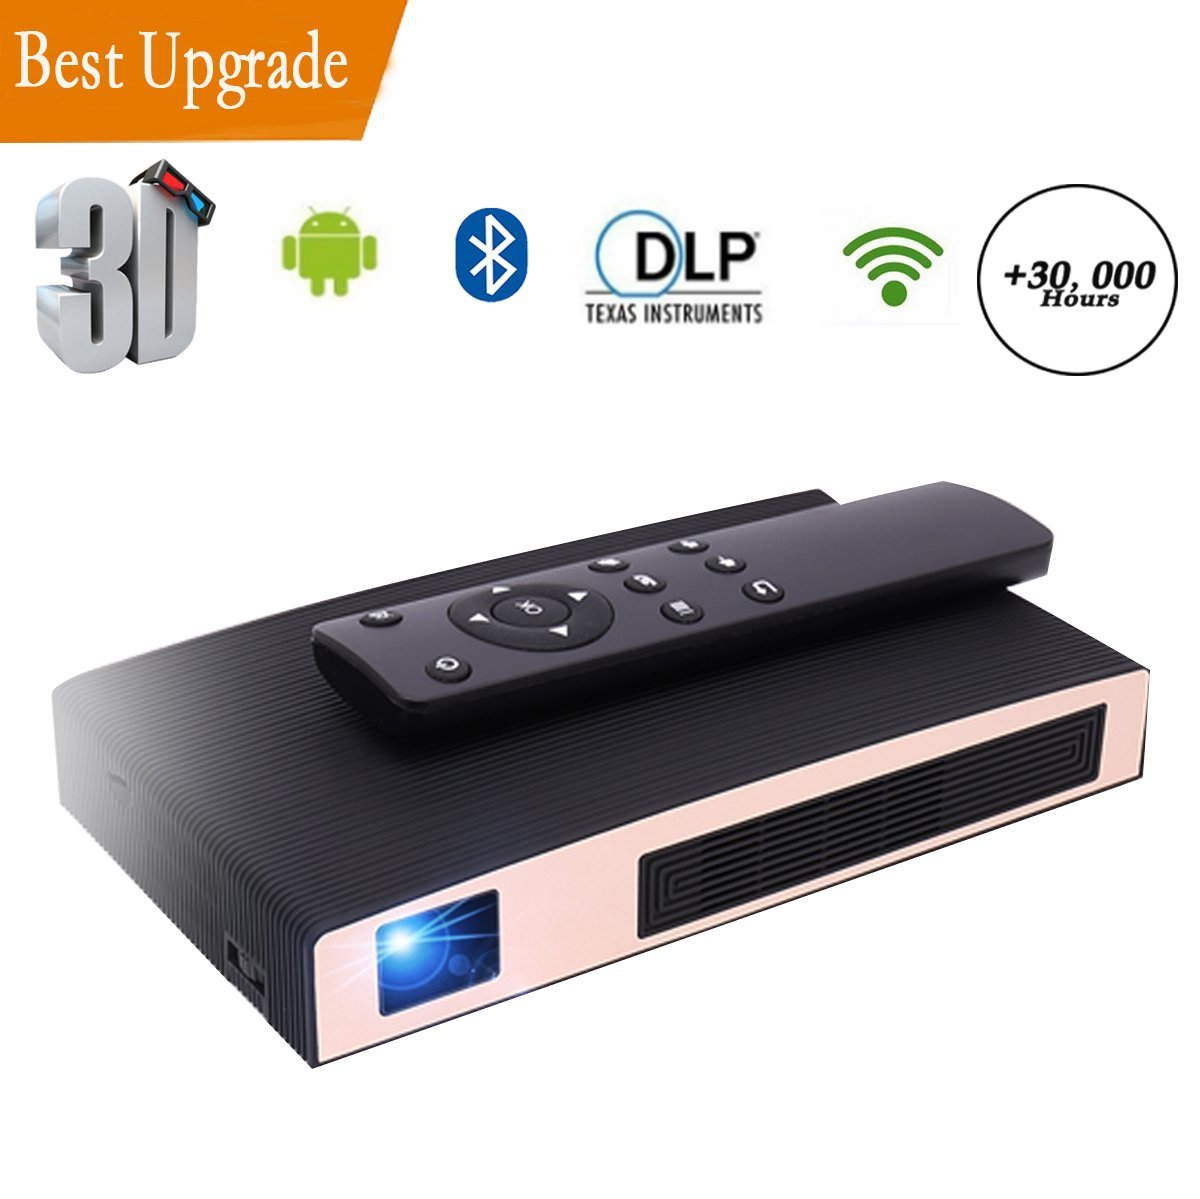 Mini Projector, MOTOU Portable Video LED Projector HD Supports 3D / HDMI / Bluetooth / USB / WIFI / TF card/iPhone /Android, Rechargeable Multimedia outdoor Pico Projector for Game /Office /Party/Out by MOTOU